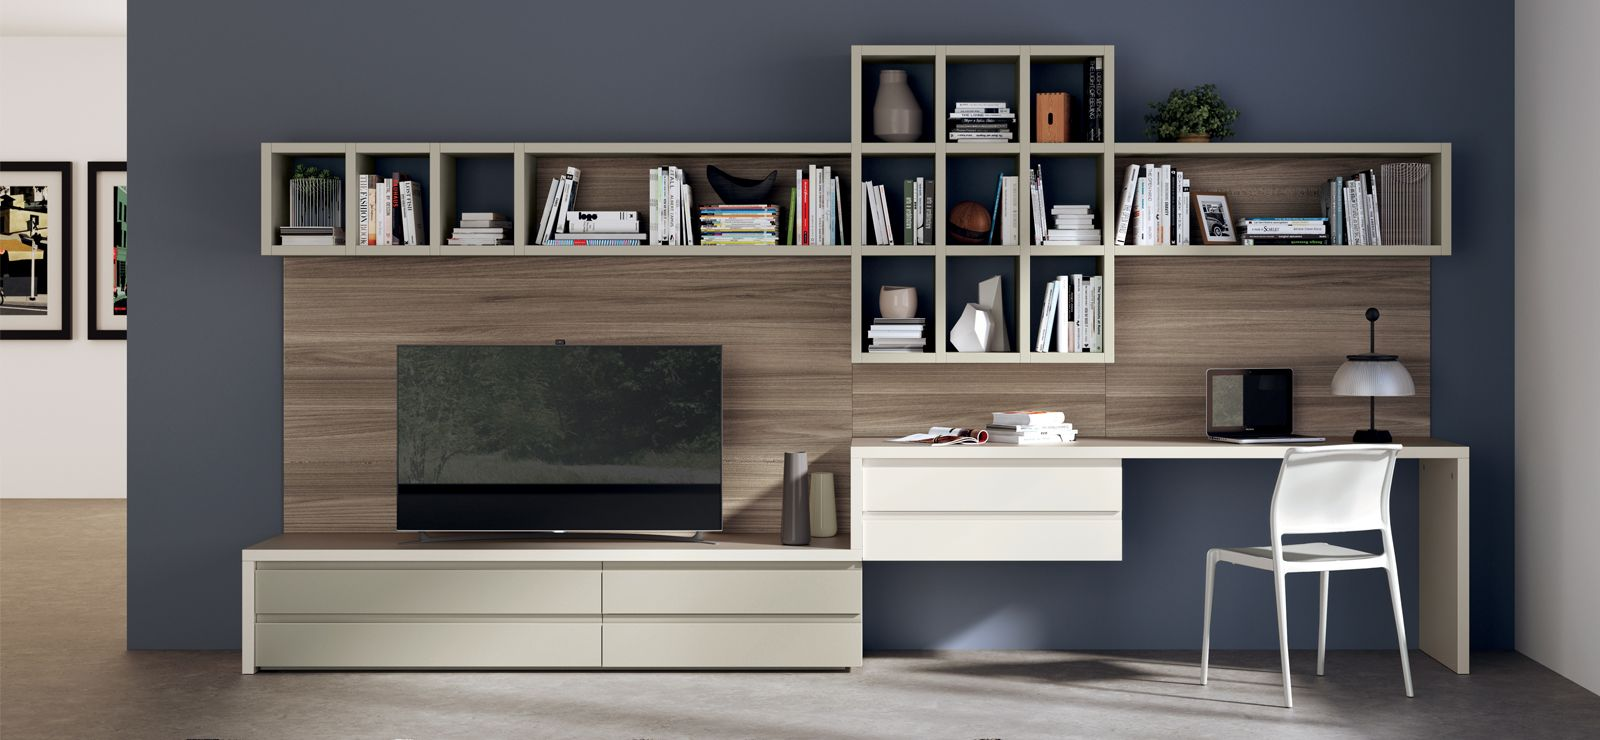 Гостиная Scavolini | Интерьеры | Pinterest | Dove grey, Navajo and Doors